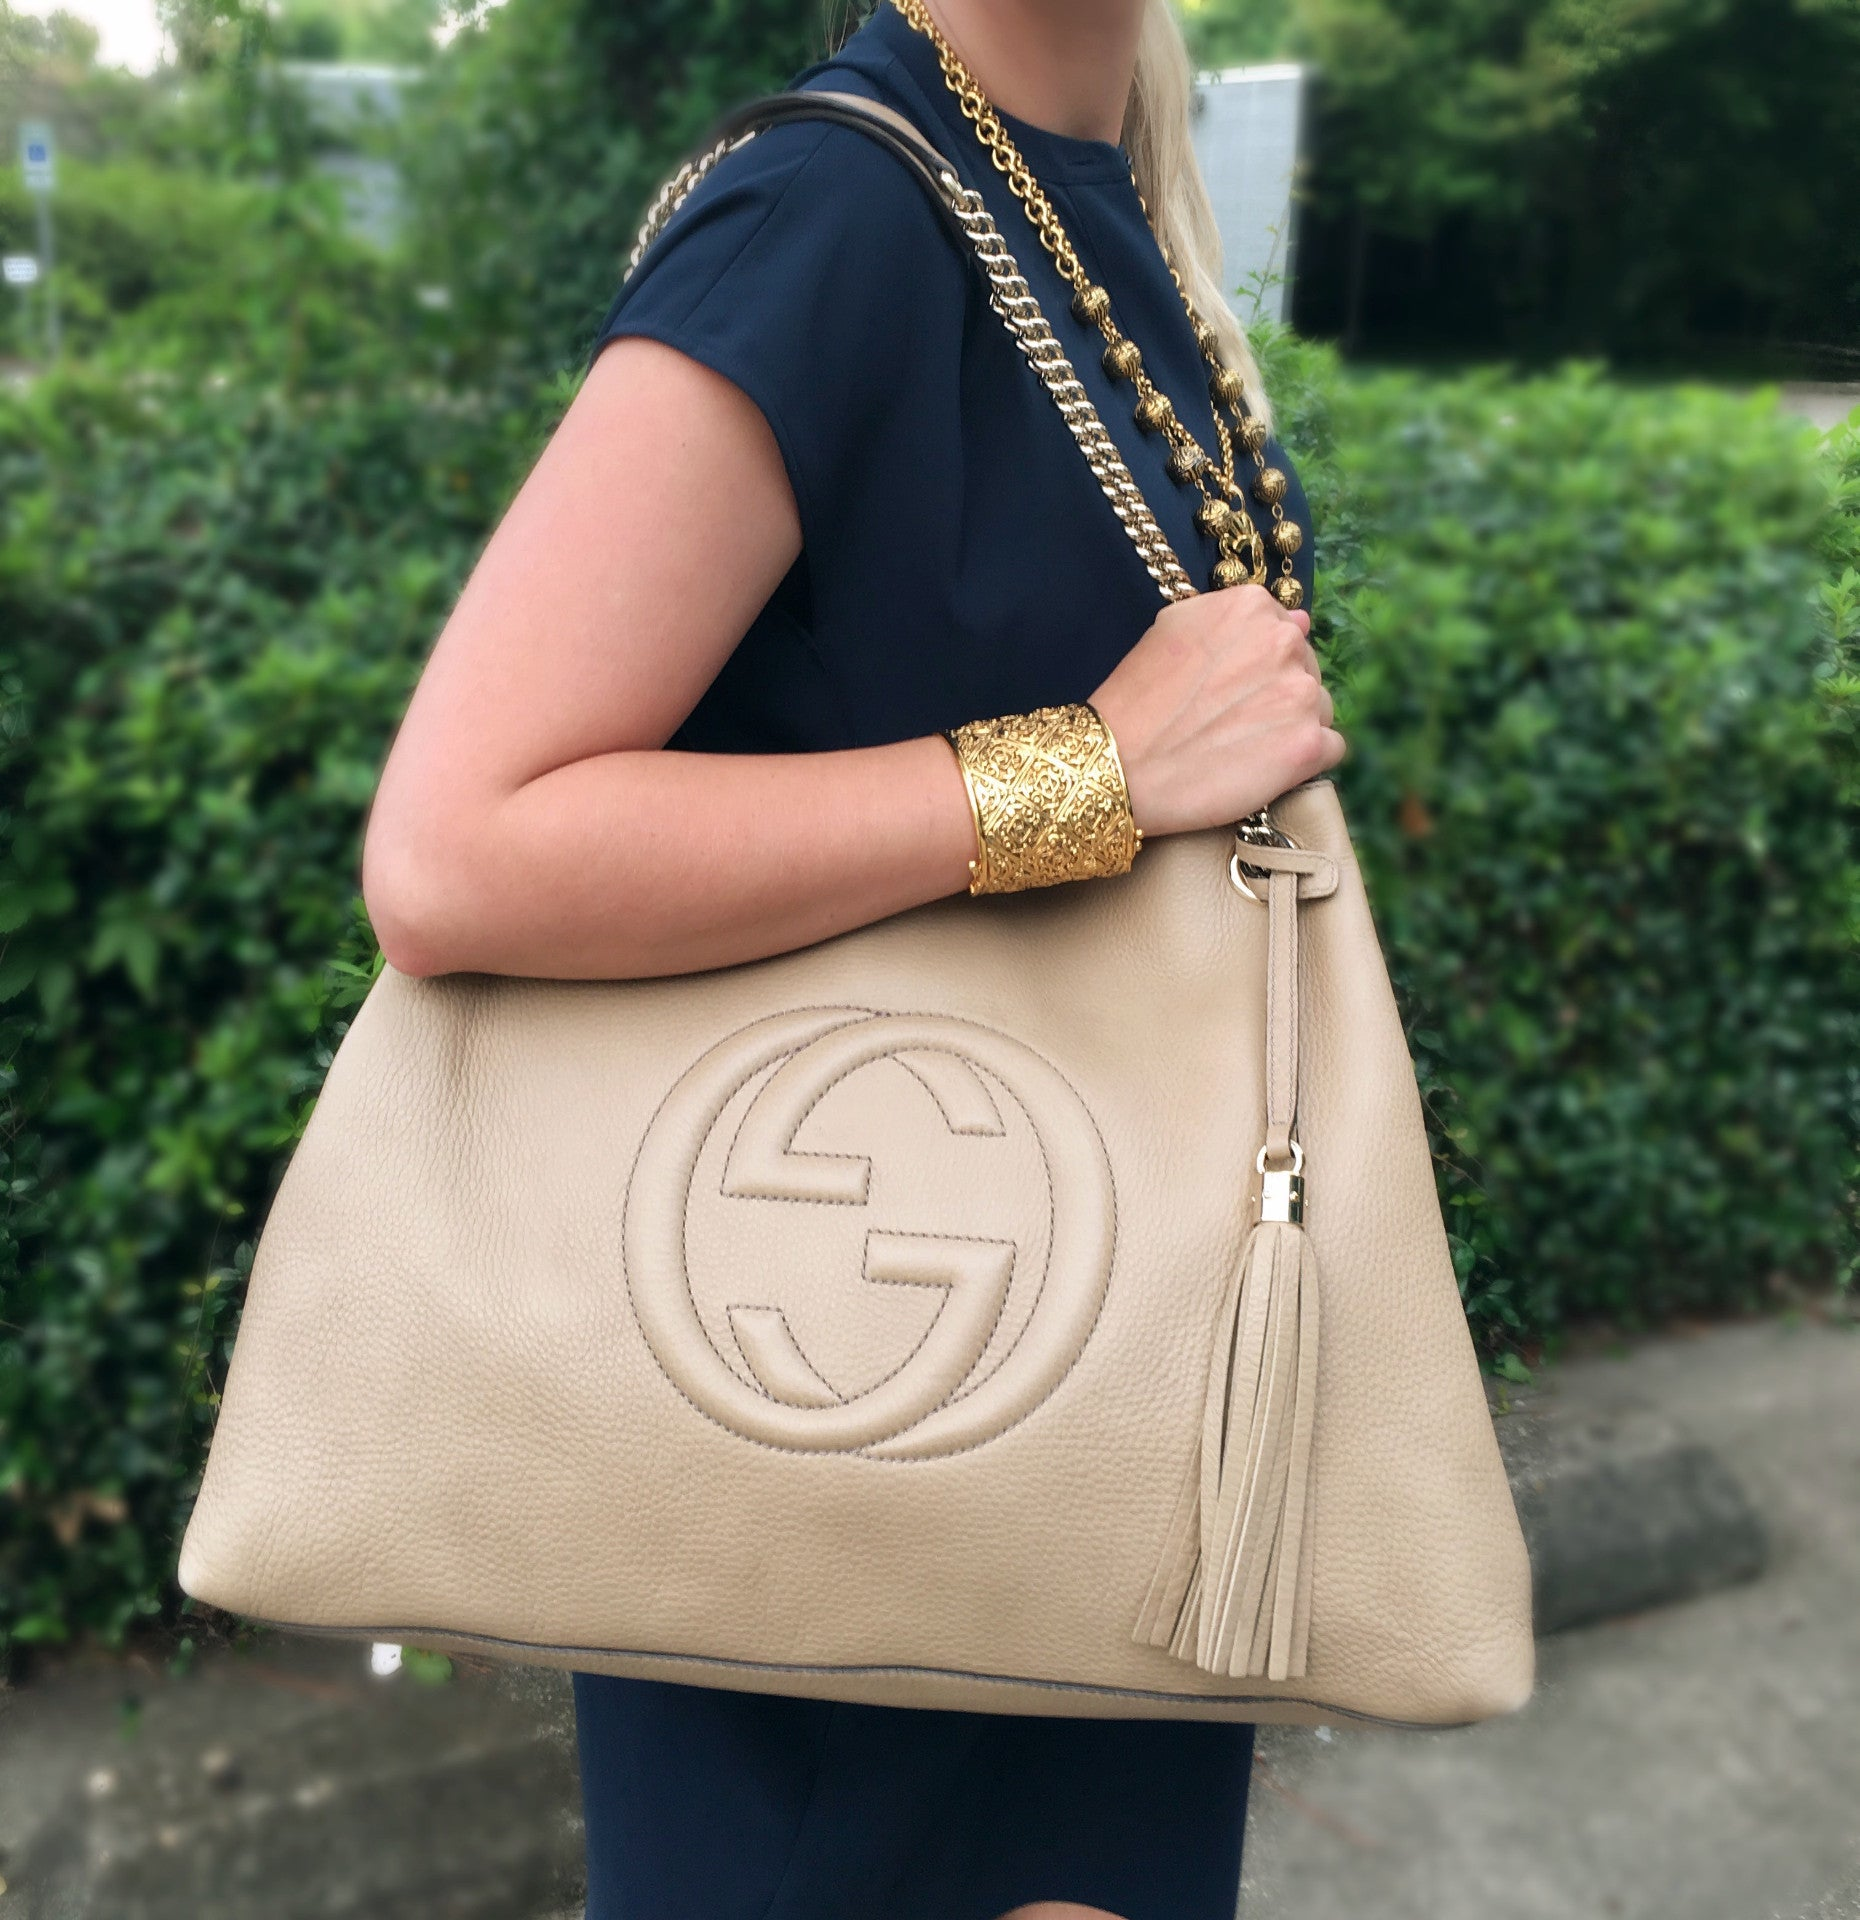 a73f51cb4e80 GUCCI Soho Pebbled Leather Tote (Large) – Pretty Things Hoarder